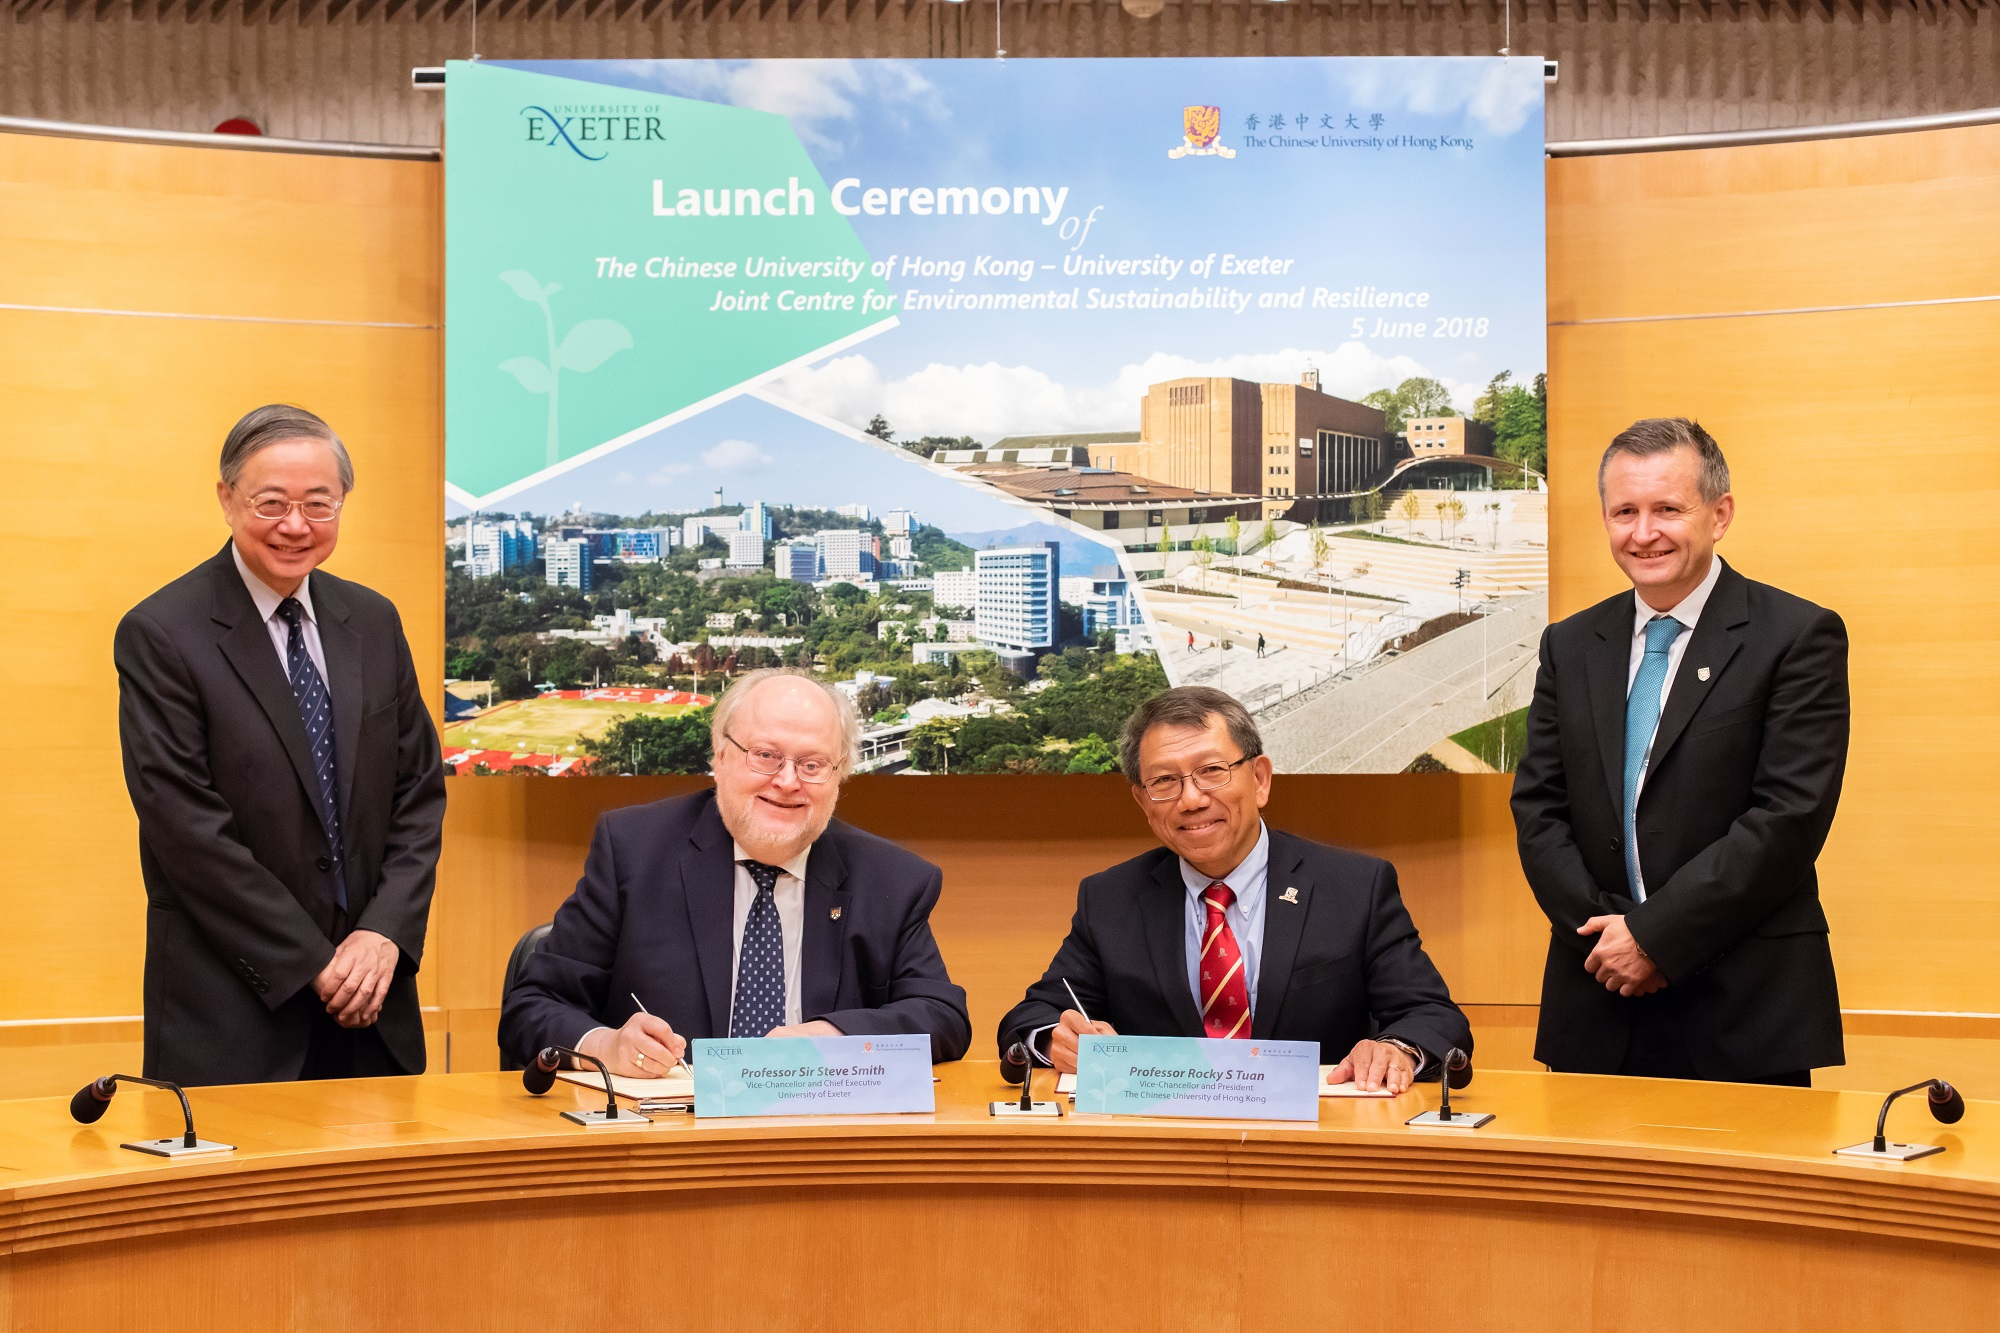 Prof. Rocky S. Tuan (right), Vice-Chancellor and President, CUHK, and Prof. Sir Steve Smith, Vice-Chancellor and Chief Executive, University of Exeter (left), sign an Agreement for the establishment of ENSURE, witnessed by Prof. Gabriel Lau, Co-Director of ENSURE, CUHK and Professor Gavin Shaddick, Co-Director of ENSURE, University of Exeter